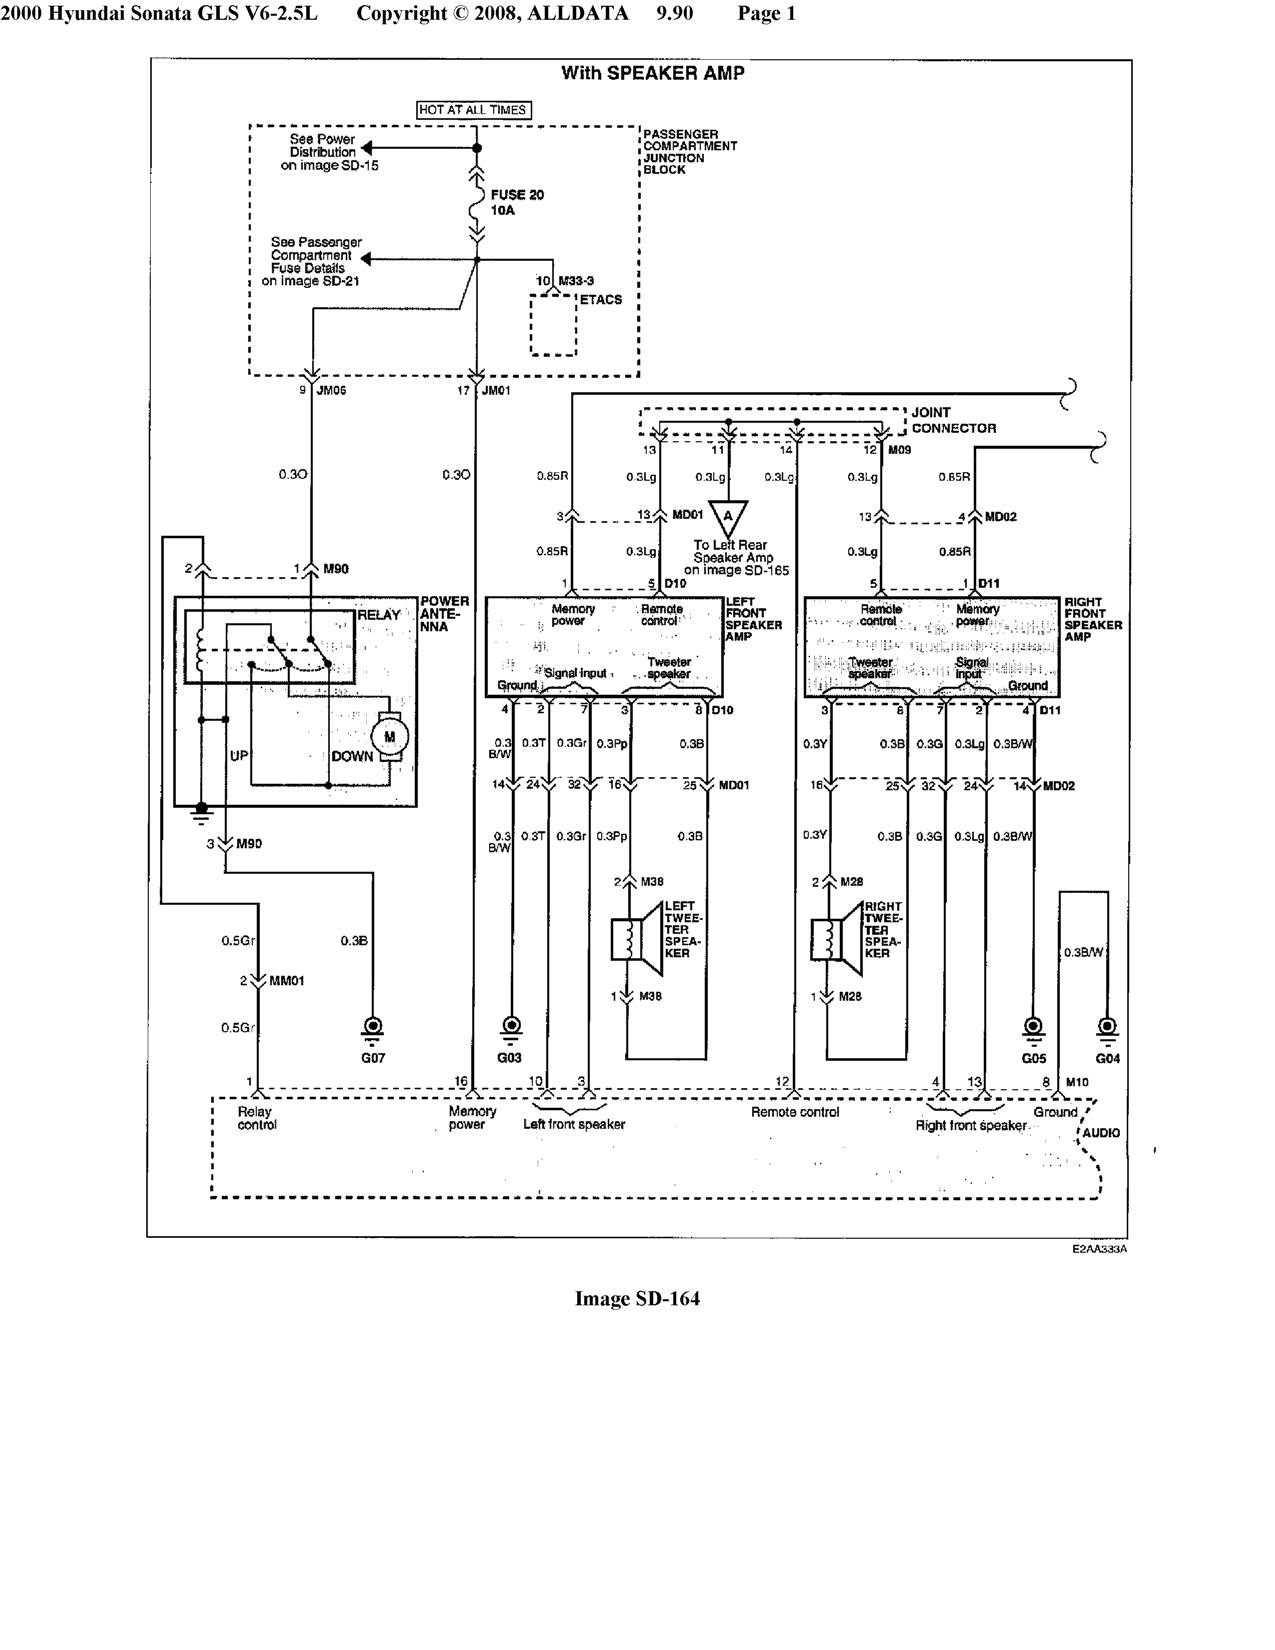 2000 Hyundai Accent Wiring Diagram Radio Books Of 1976 Dodge Sportsman Rv Wire Center U2022 Rh 149 28 112 140